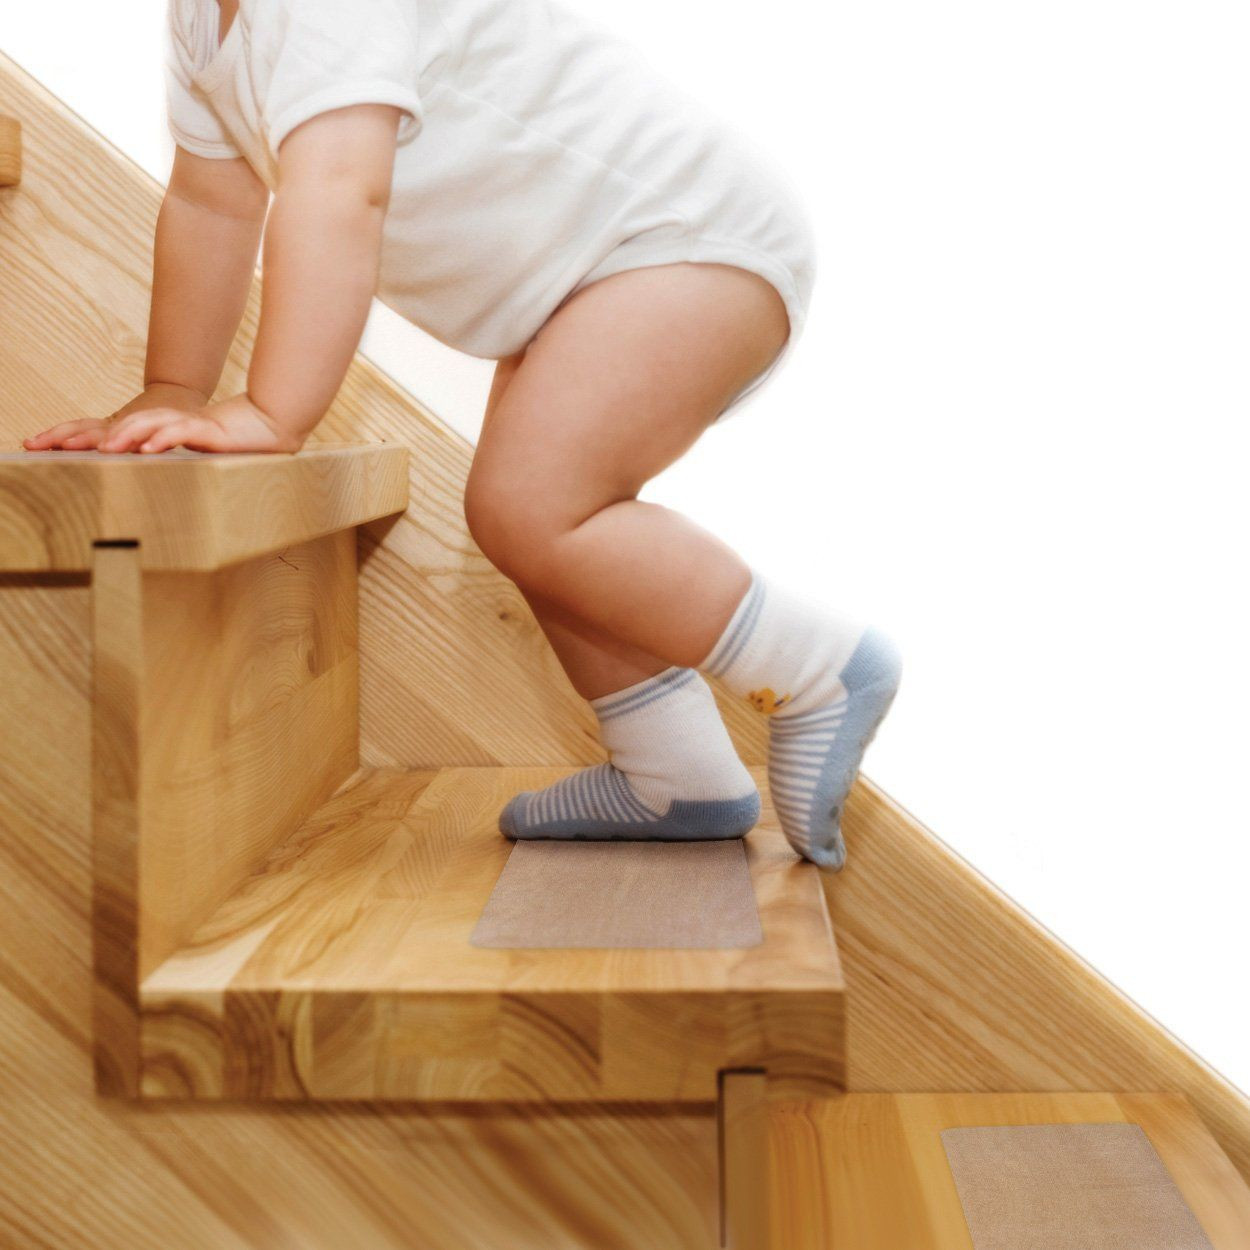 installing glue down hardwood floors of steady treads set of 10 pvc free non slip clear opaque adhesive throughout steady treads set of 10 pvc free non slip clear opaque adhesive stair treads and handy installation roller improve safety and slip prevention on stairs